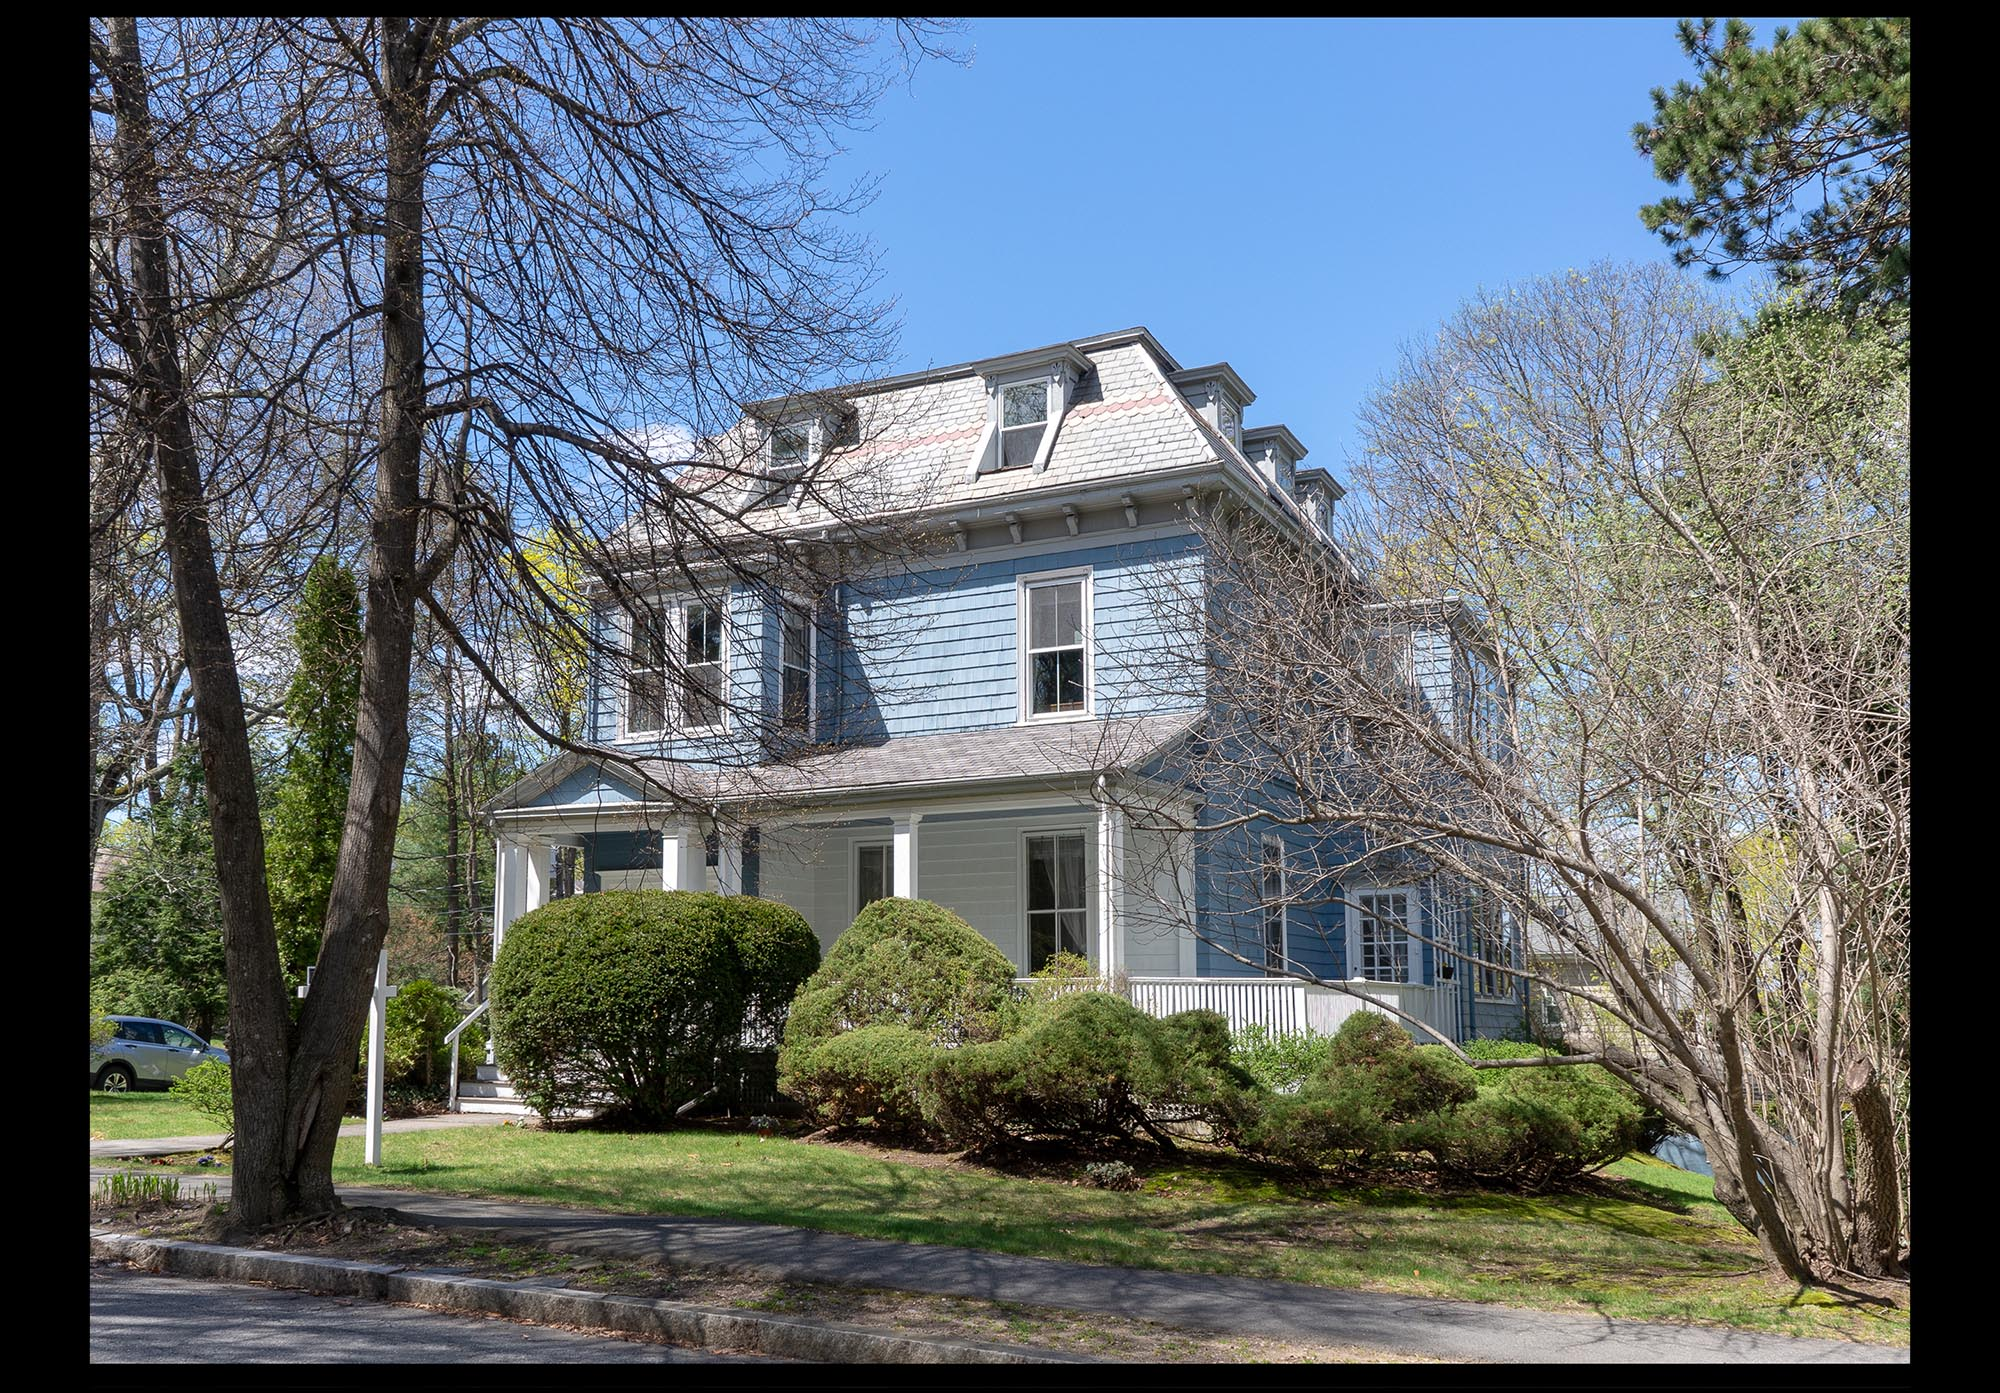 185 Highland Avenue, West Newton - $1,890,000